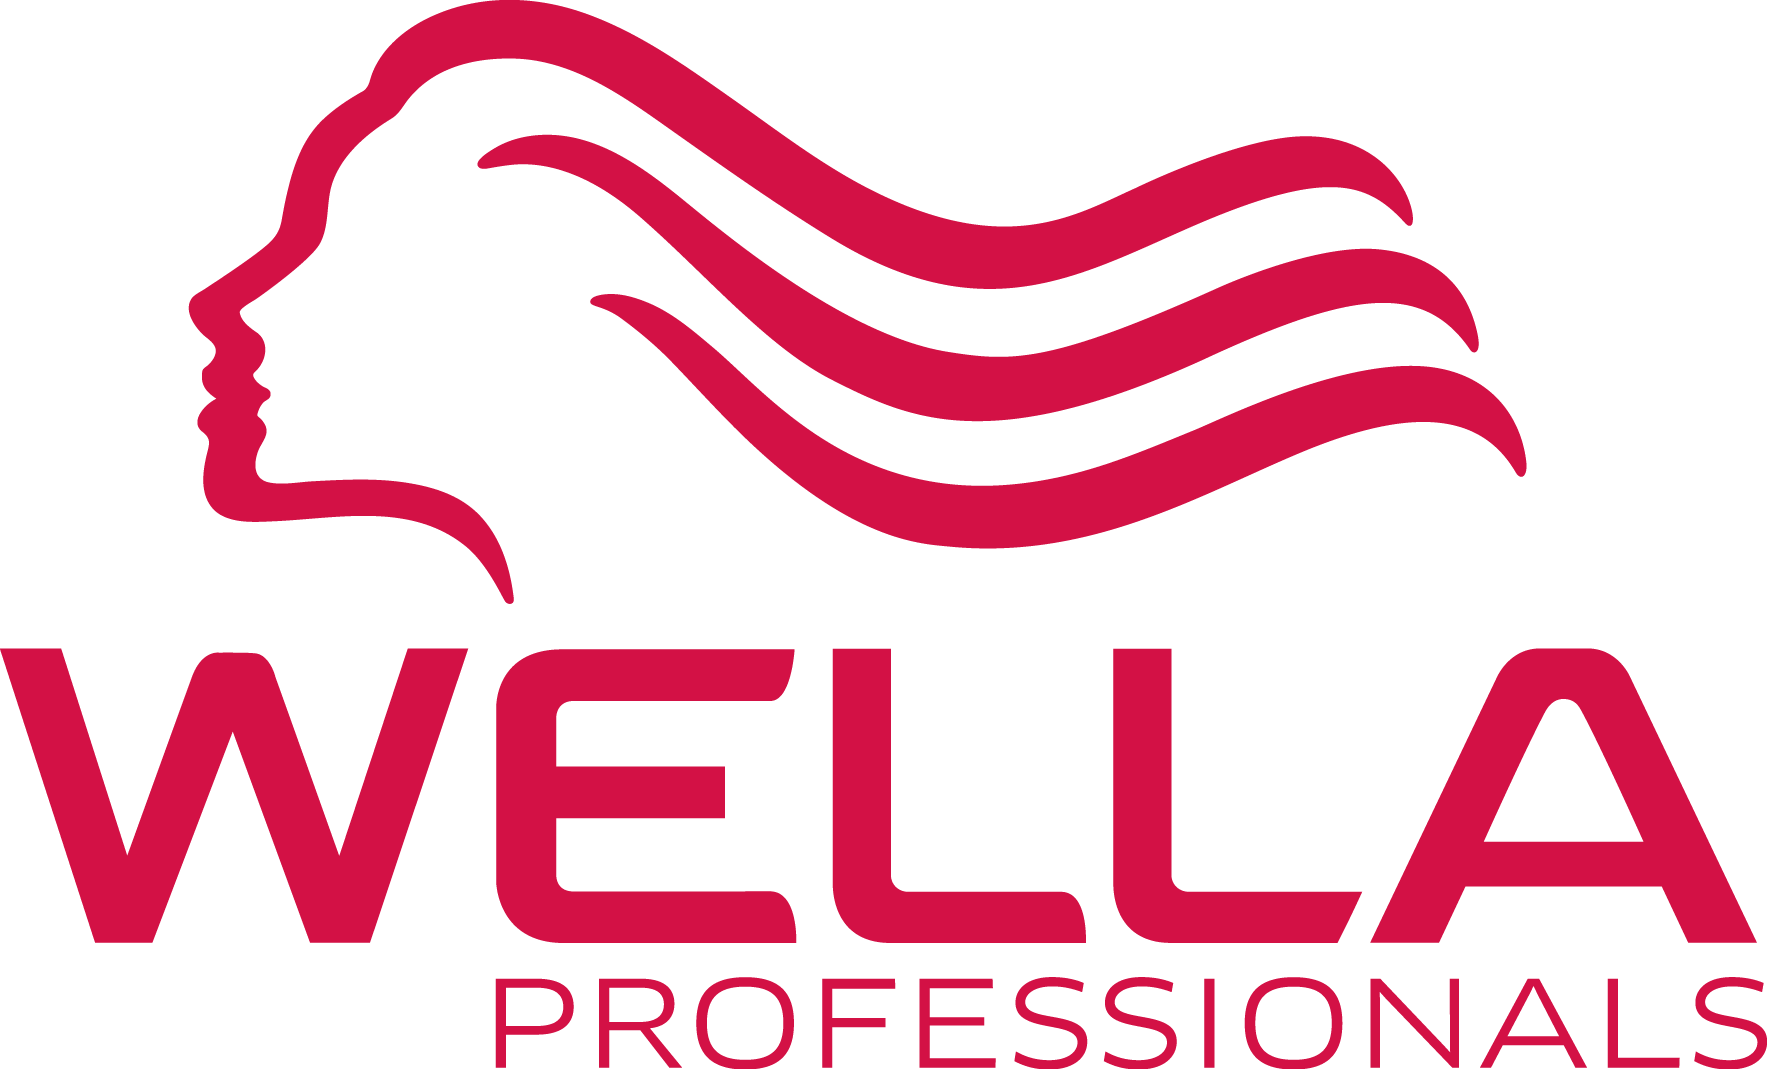 http://www.johnolivers.com/wp-content/uploads/2014/04/Wella-Professionals-logo-4.png